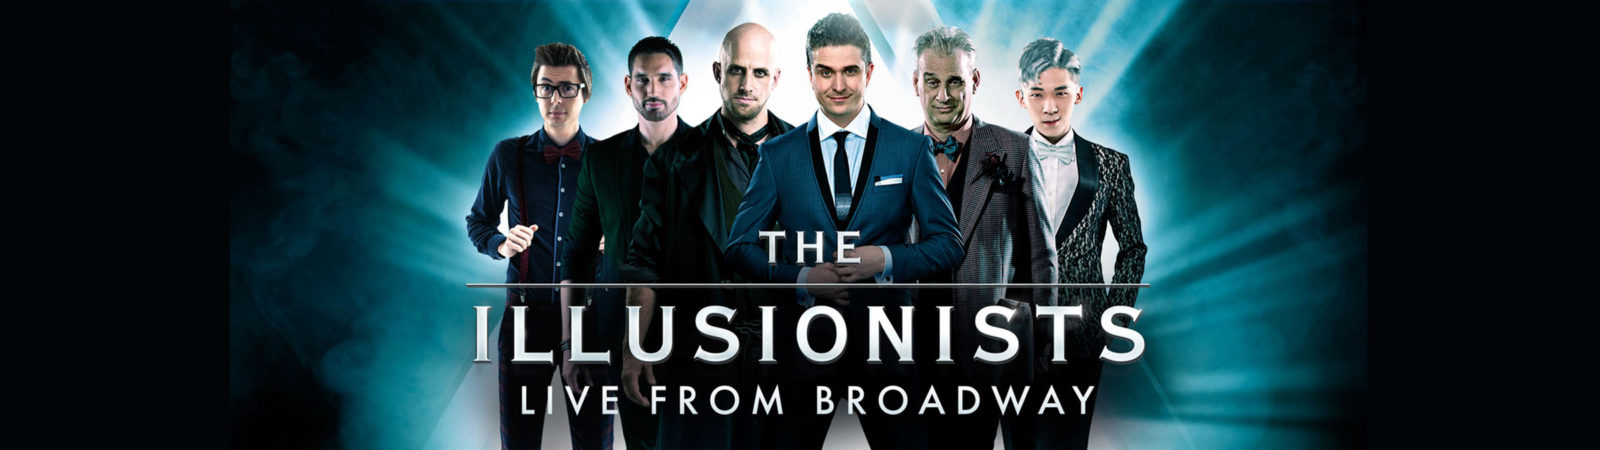 The Illusionists – Live From Broadway